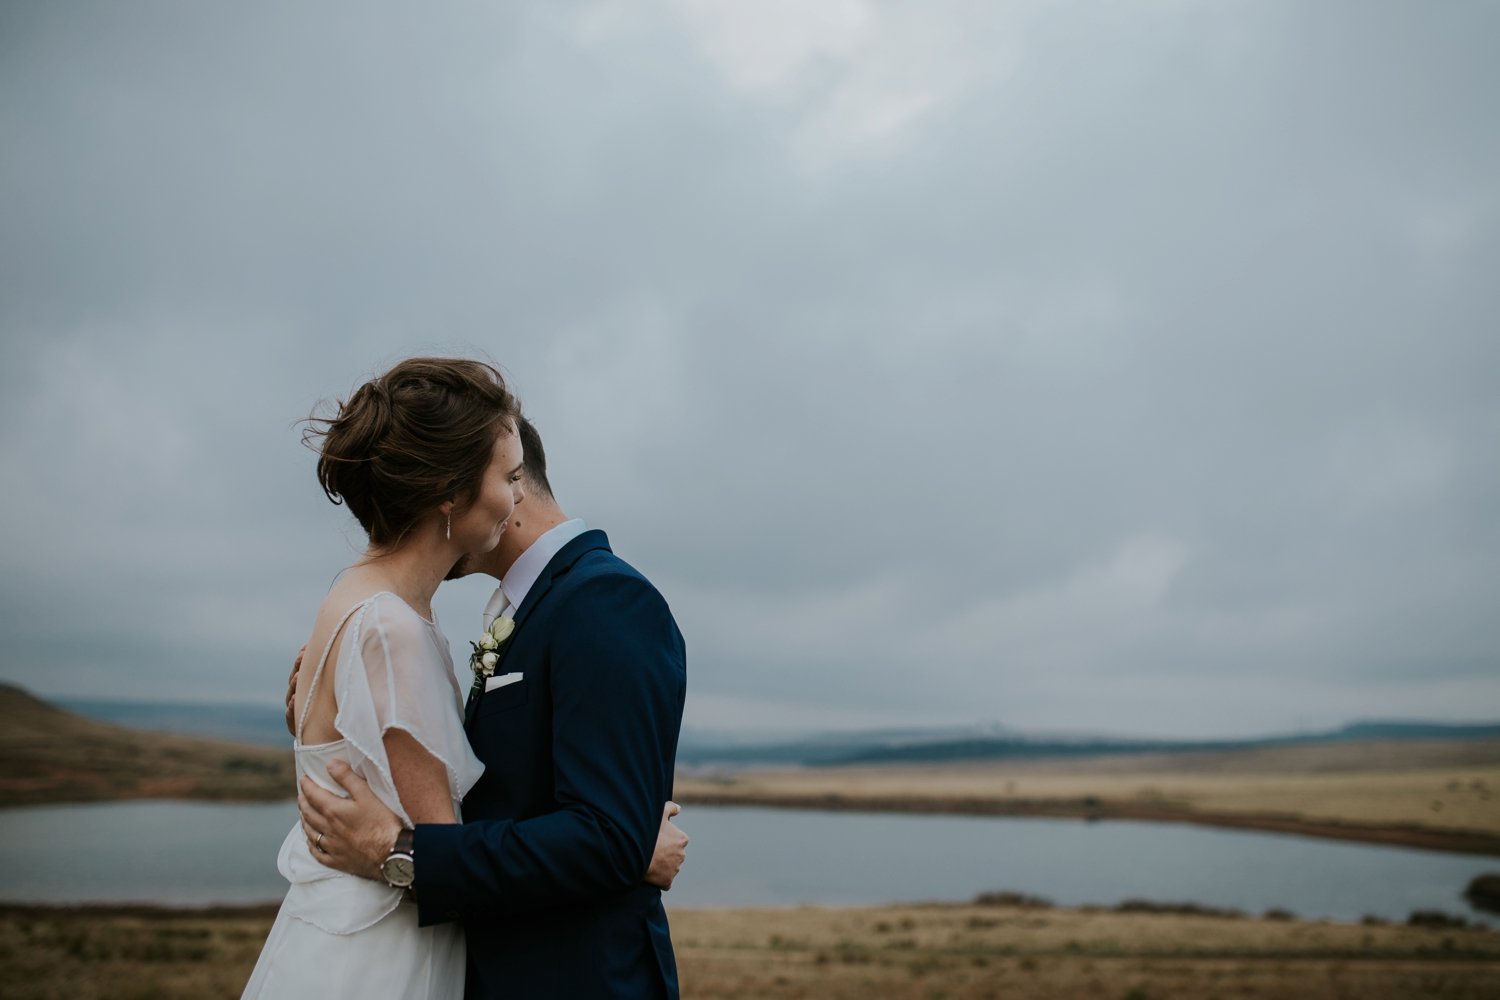 Candid Wedding Portraits by Photojournalistic Vancouver Wedding Photographer in Nature